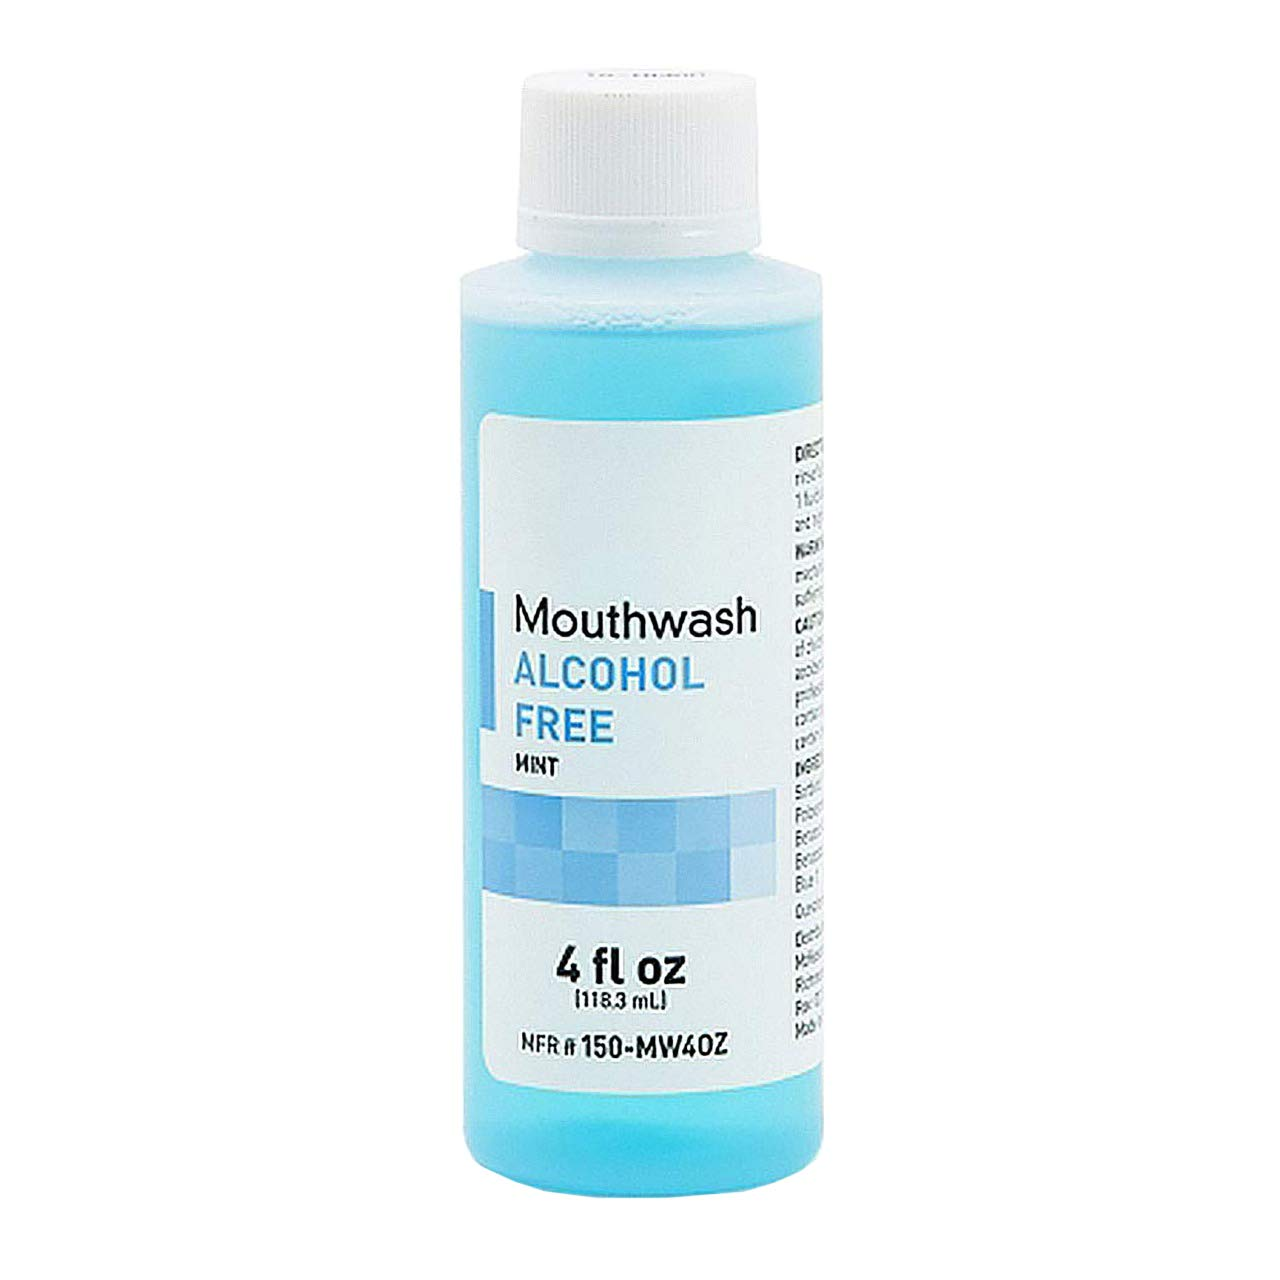 AMZ Mint Flavor Mouthwash Oral Rinse 4 oz. Mint Mouth Rinse for Oral Hygiene Alcohol-Free Flavored Breath Freshener for Dental Care Safe to use.